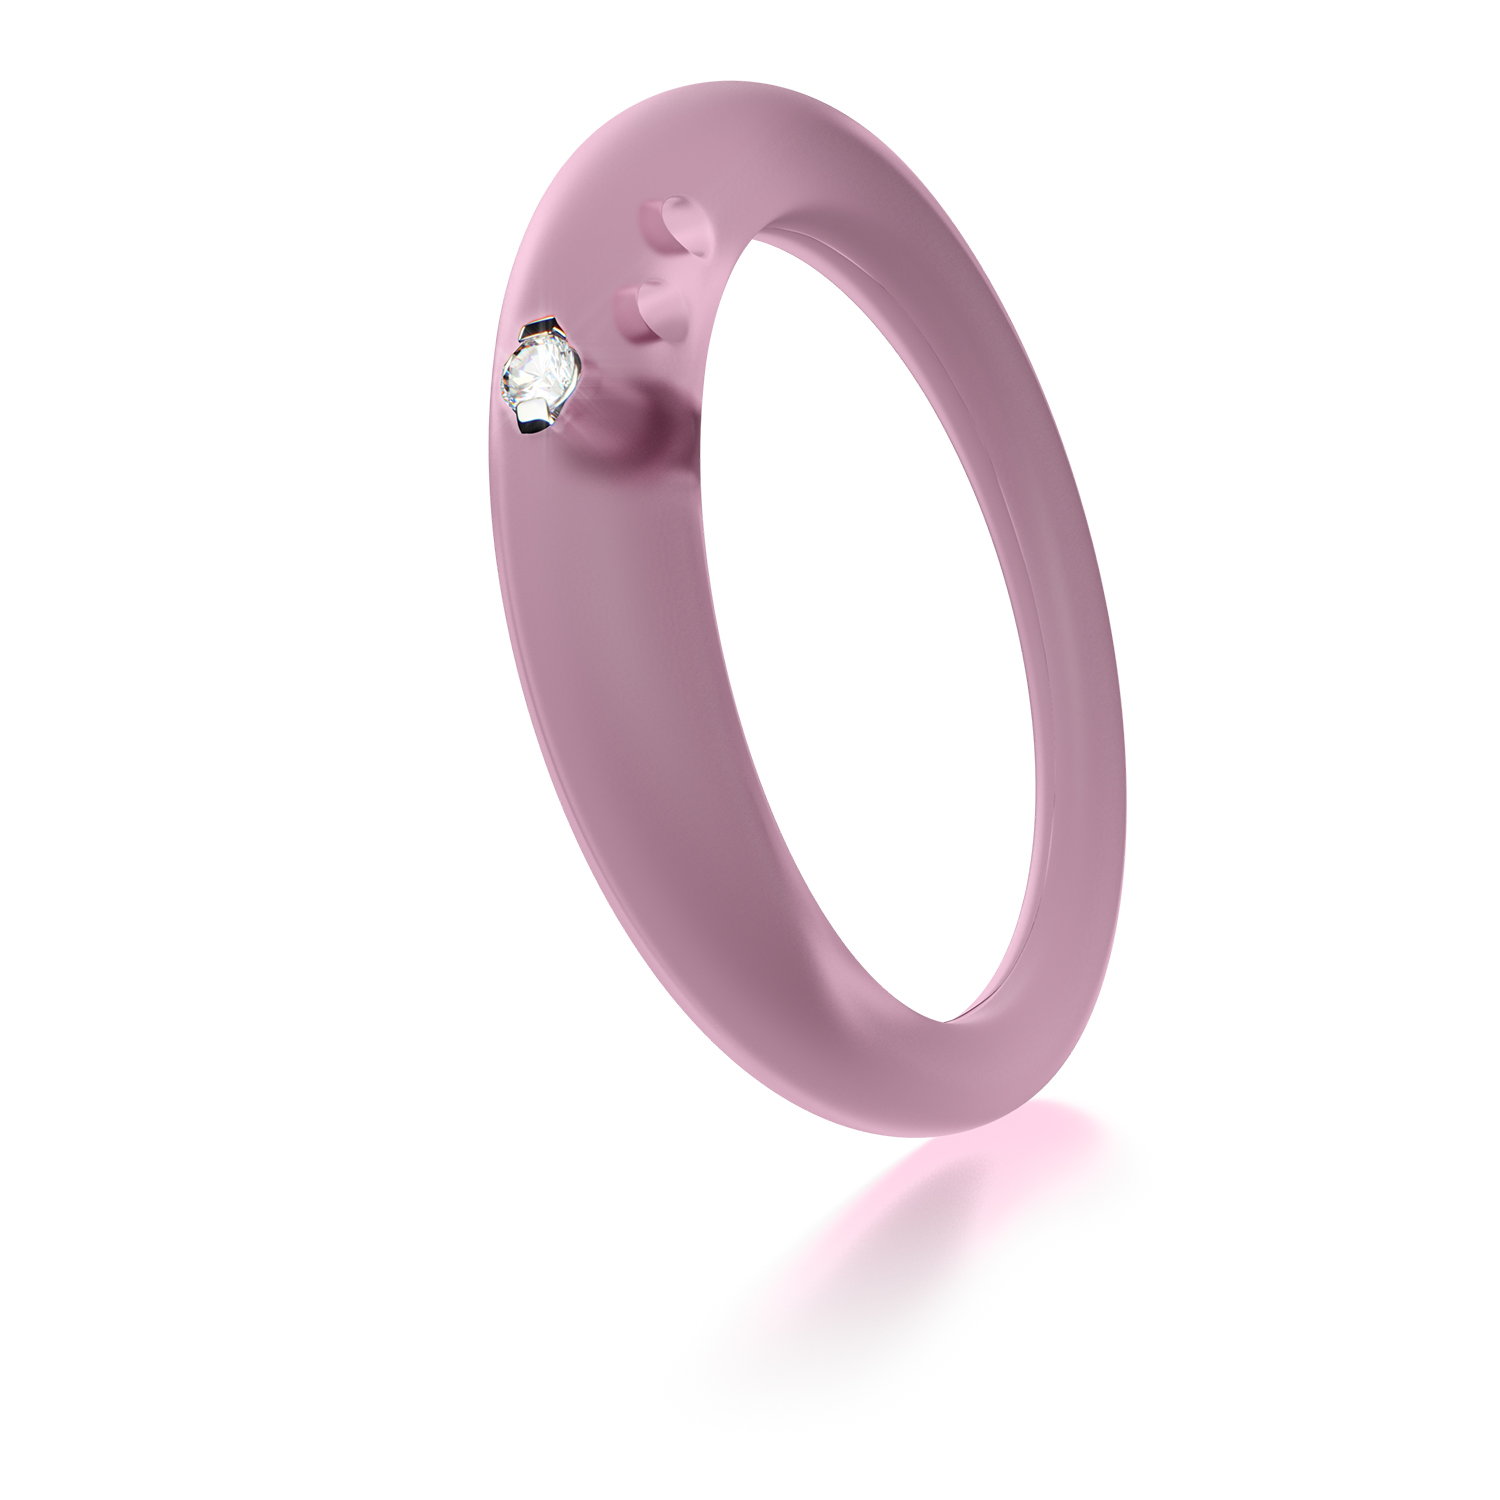 Silicone Ring With Diamond >> Duepunti Diamond Round Cut Stone Silver & Silicone Women's Jewelry Fashion Ring | eBay